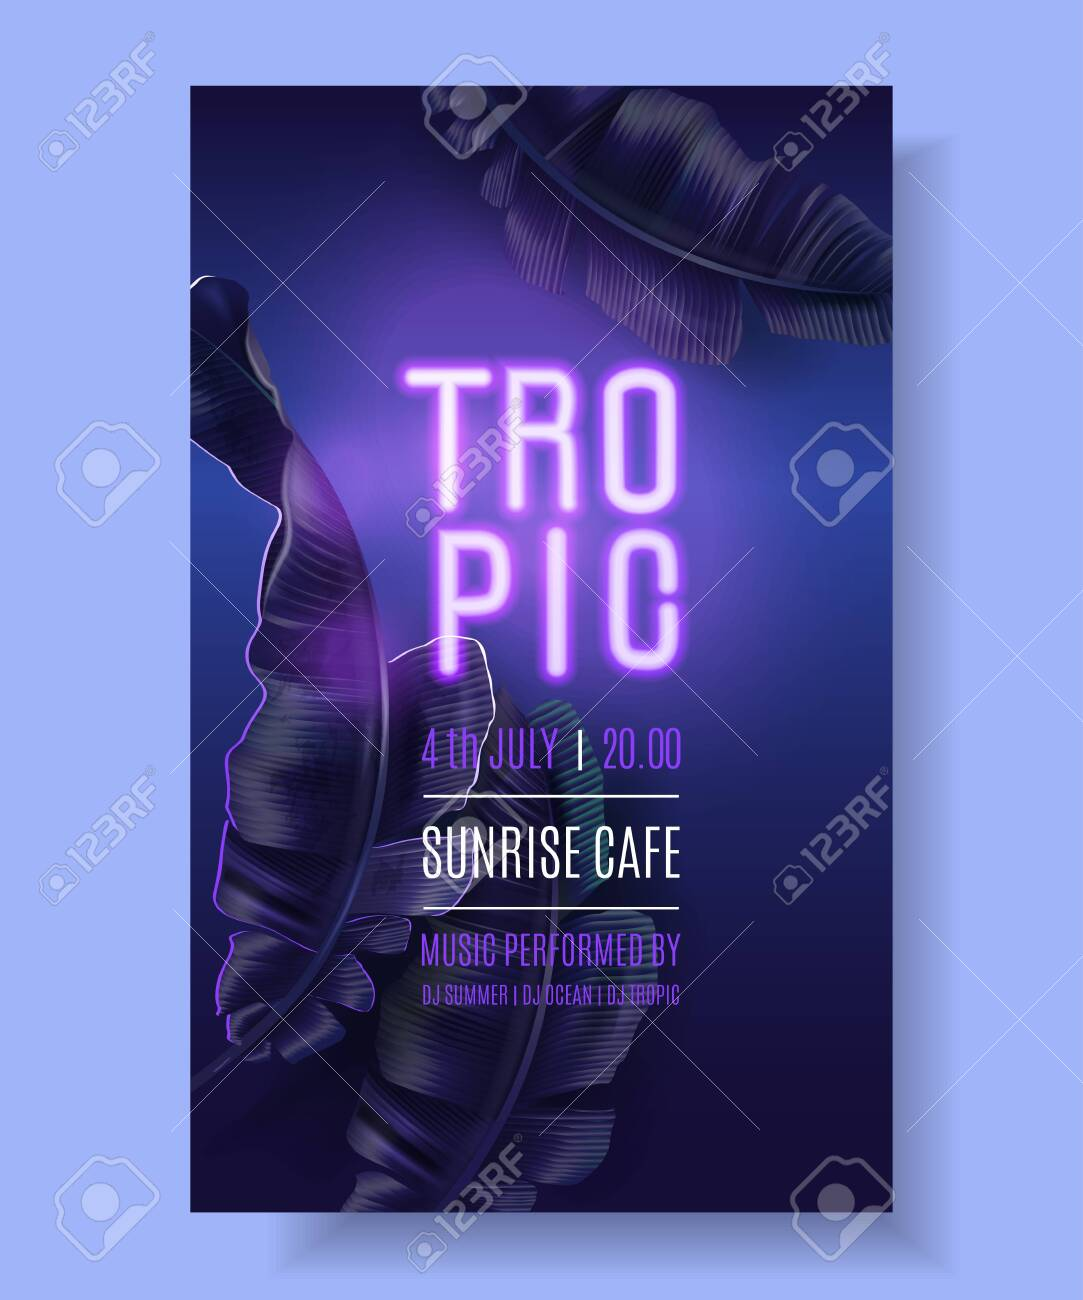 Vector tropical banner with purple banana leaves and pink neon letters on dark blue background. Exotic design for night music party, beach event invitation, dance party, summer sale, cosmetics flyer - 139511797